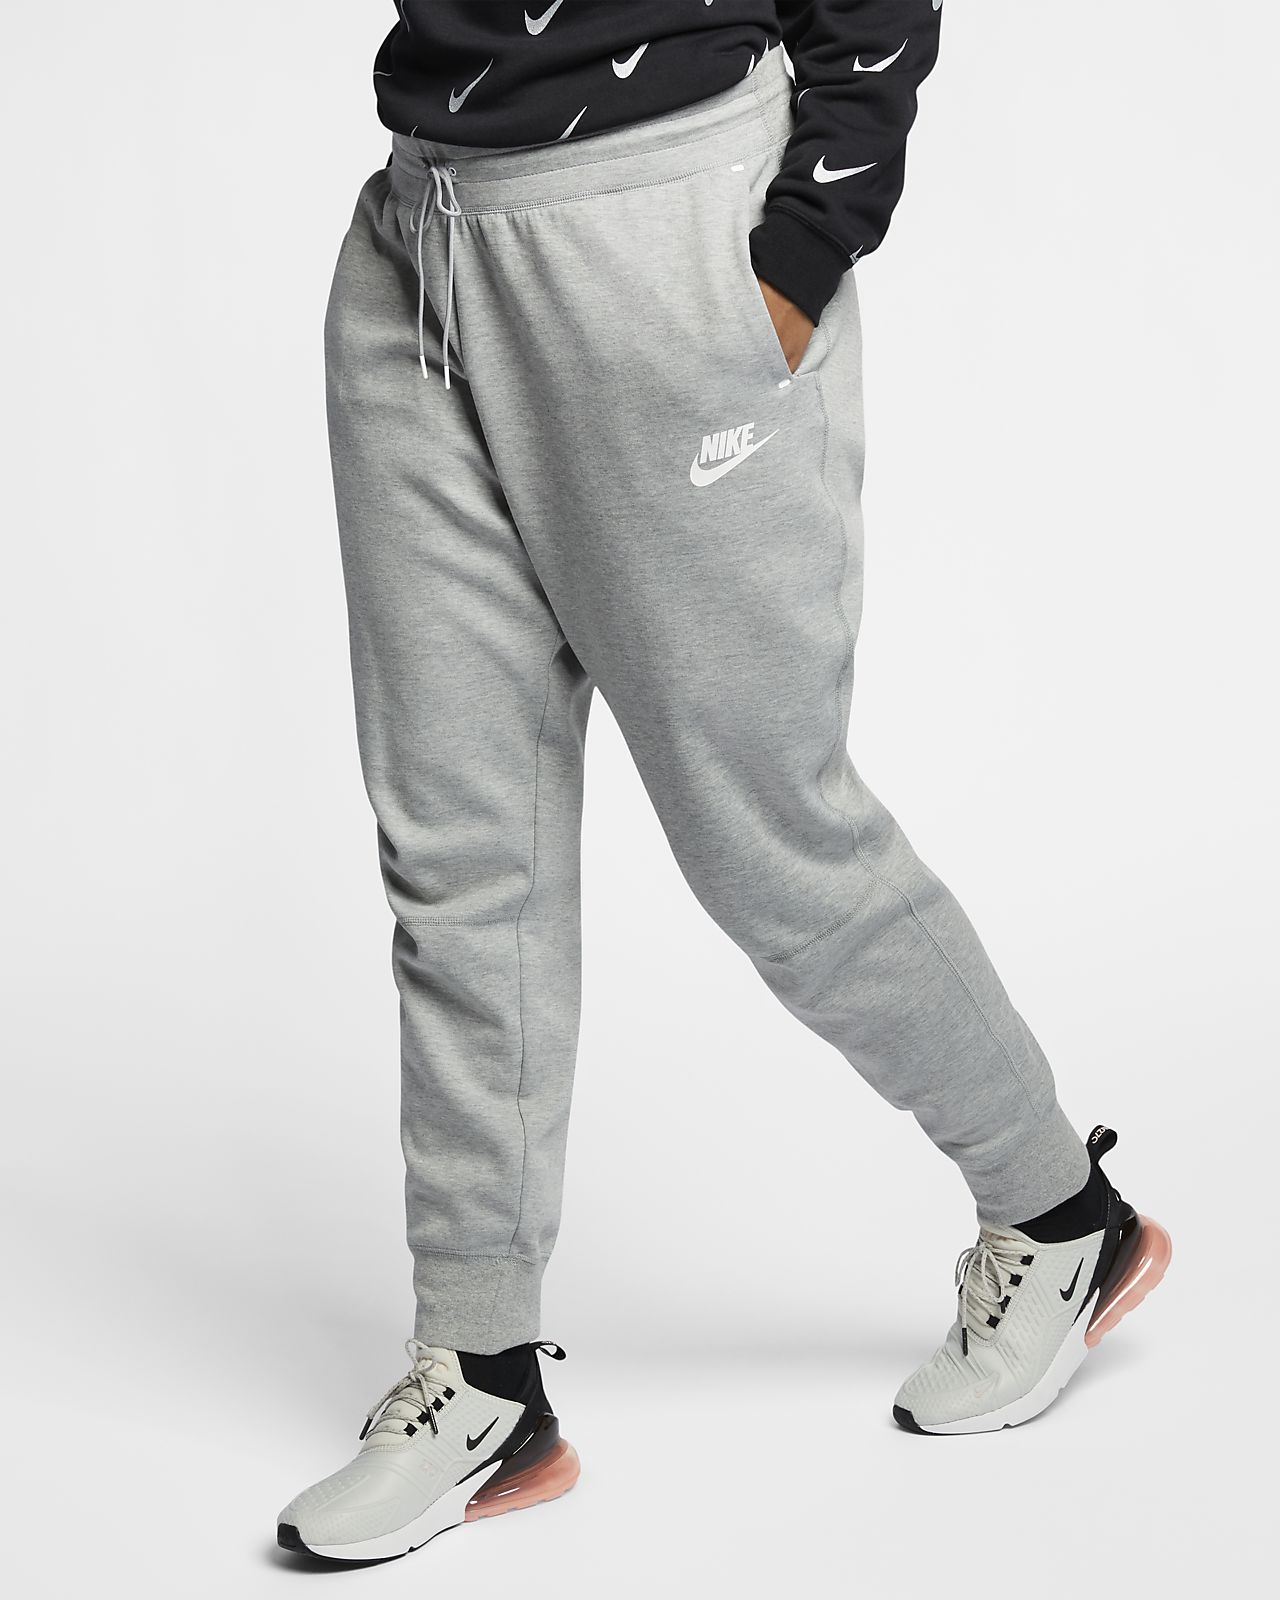 Nike Wmns Tech Fleece Pant